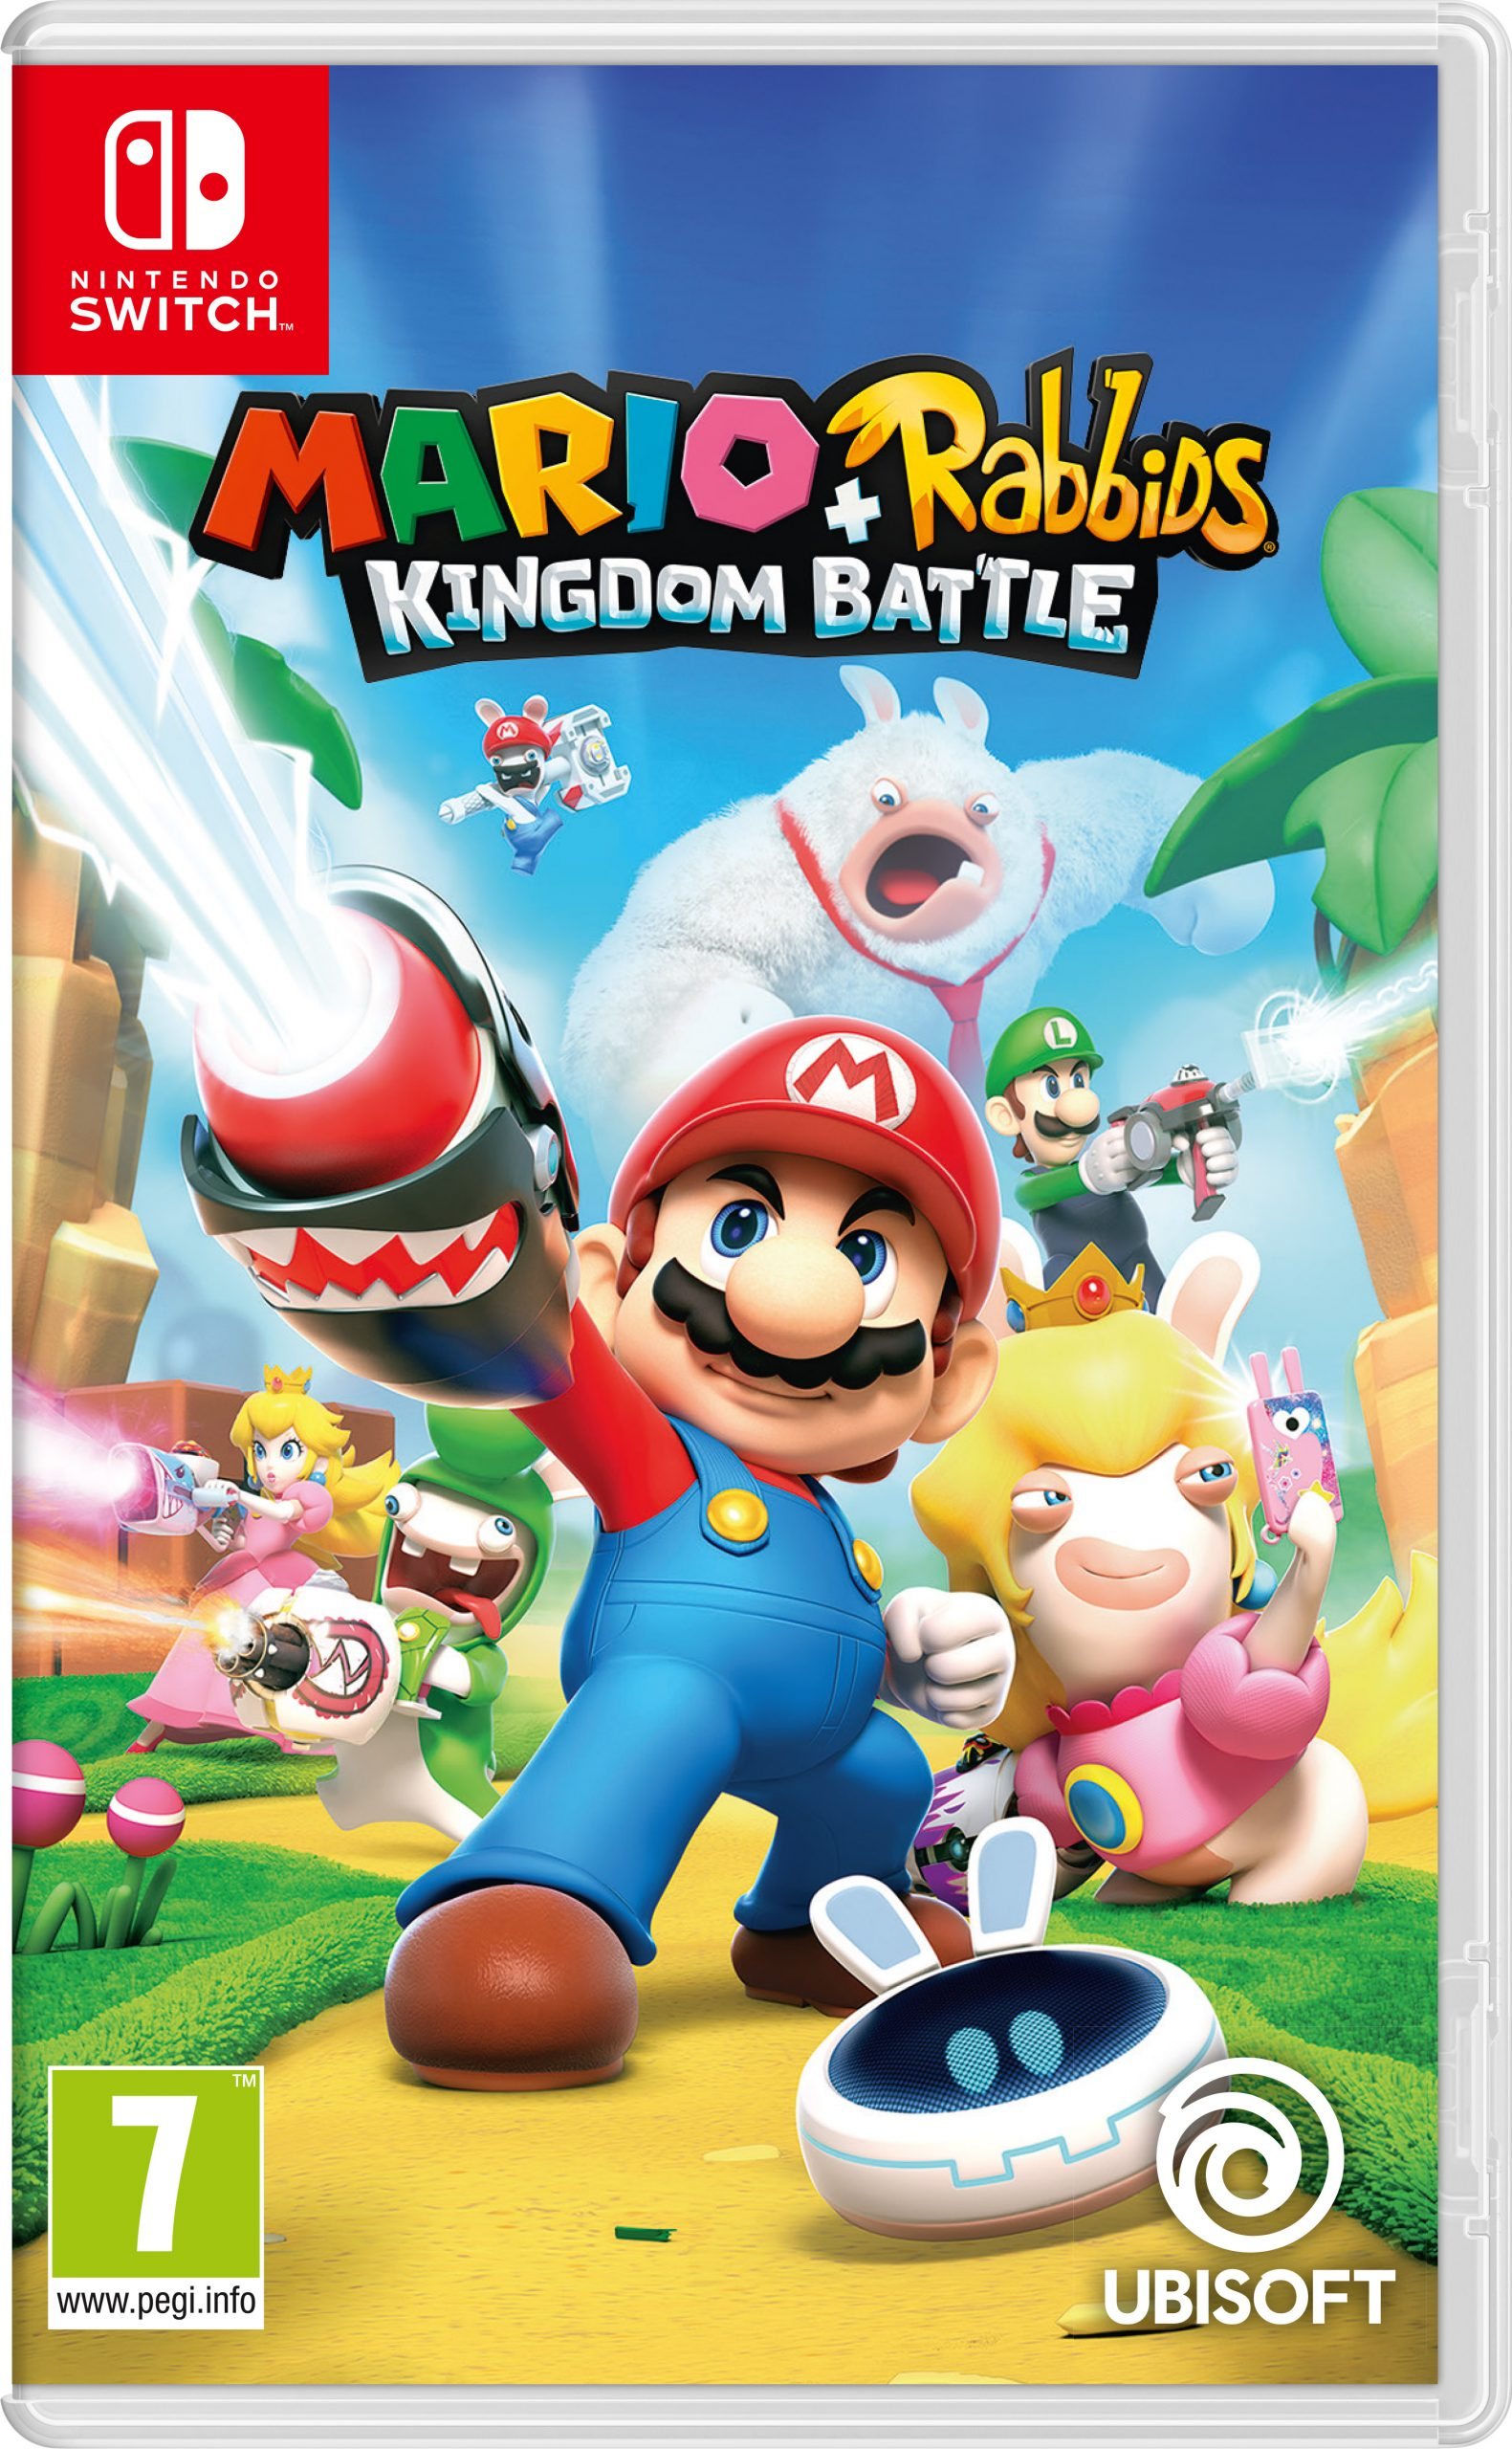 Mario + Rabbids: Kingdom Battle review - The best Nintendo Switch exclusive so far